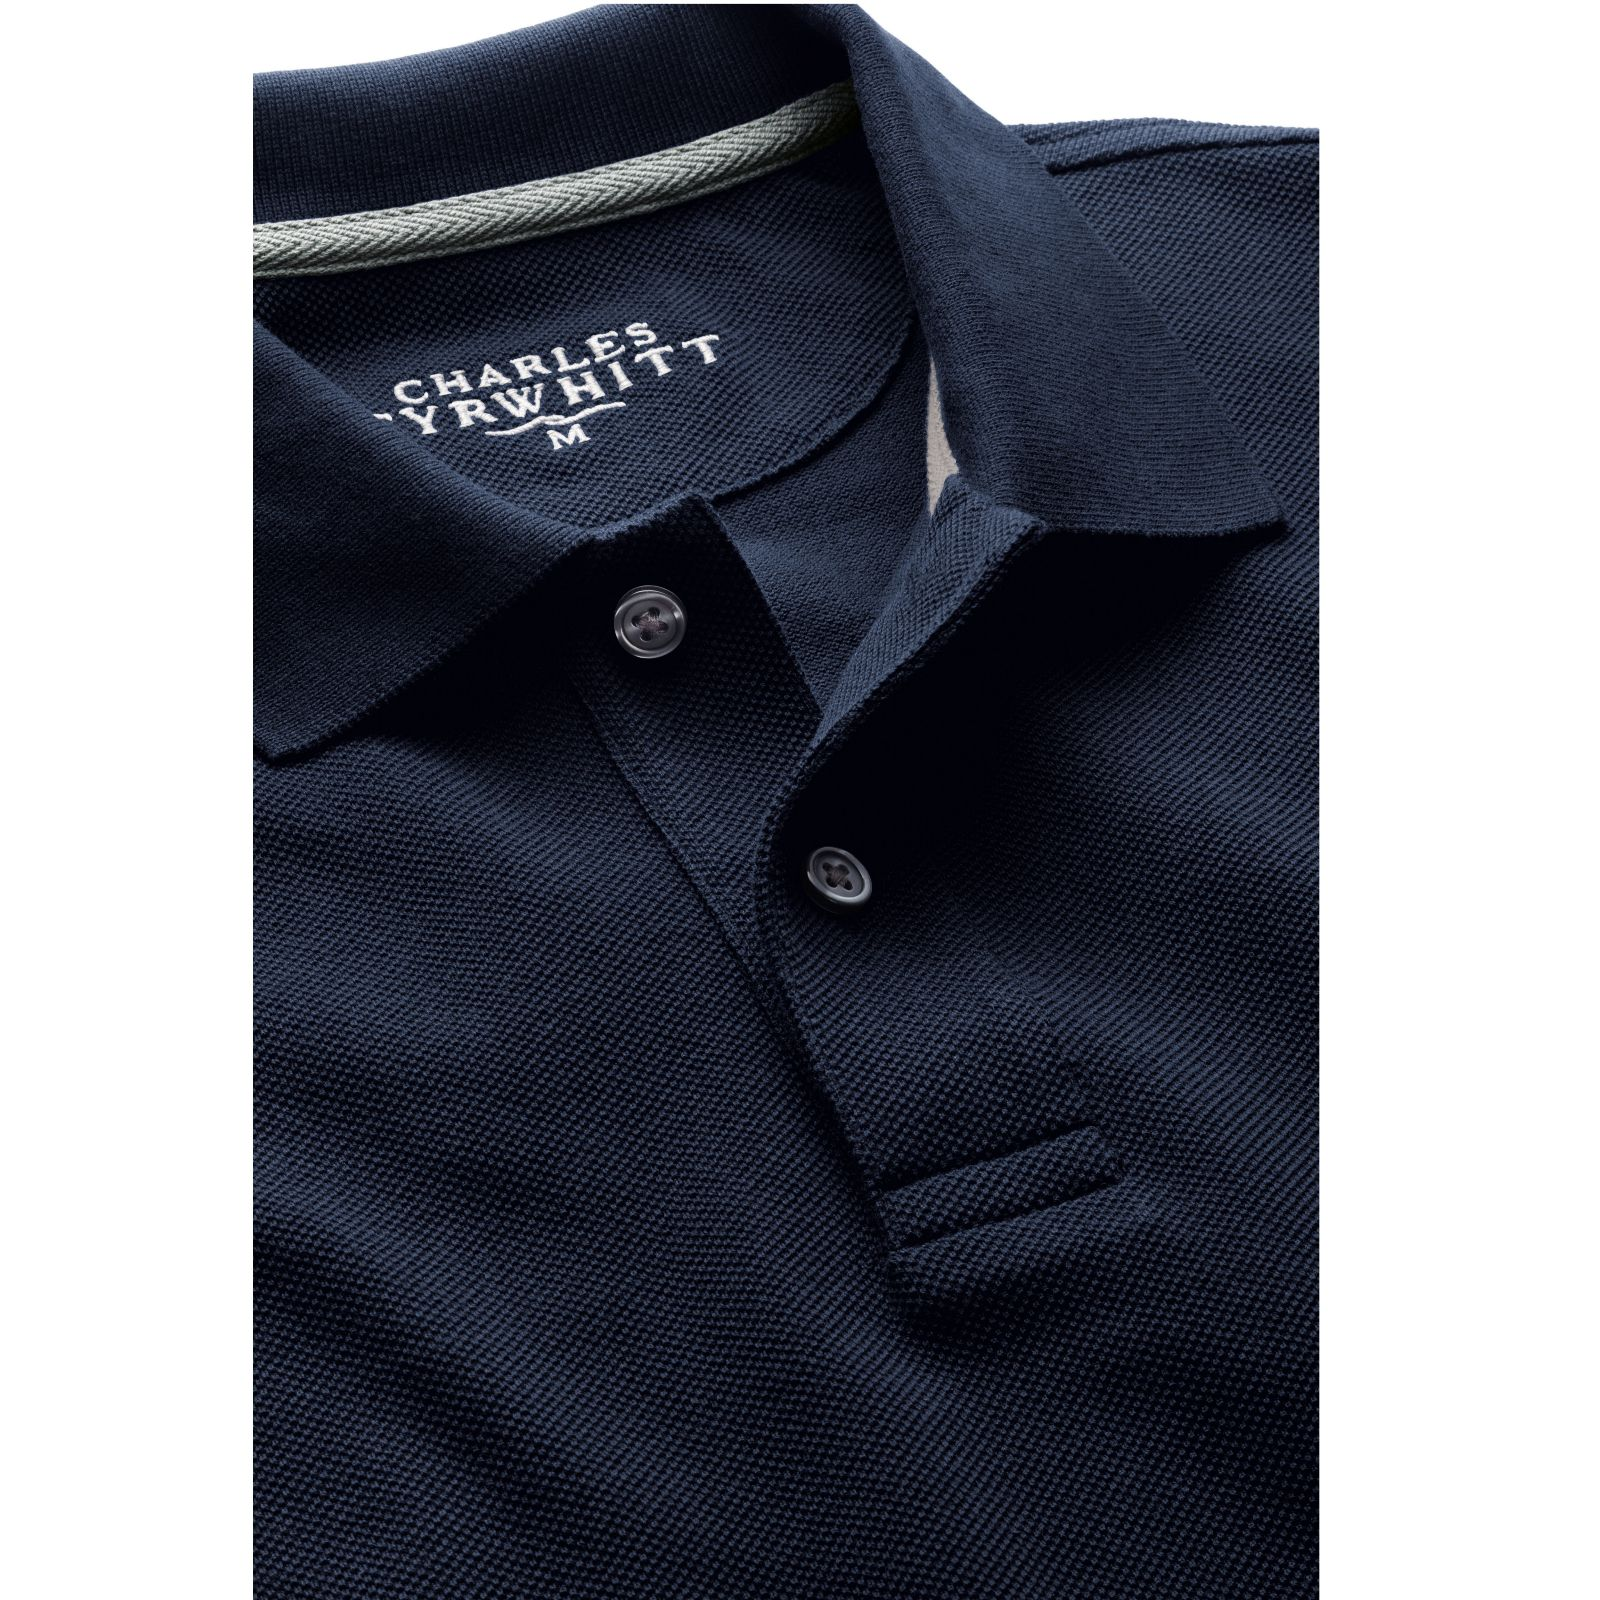 d7fe27f70 Charles Tyrwhitt Polo Shirts Review – EDGE Engineering and ...